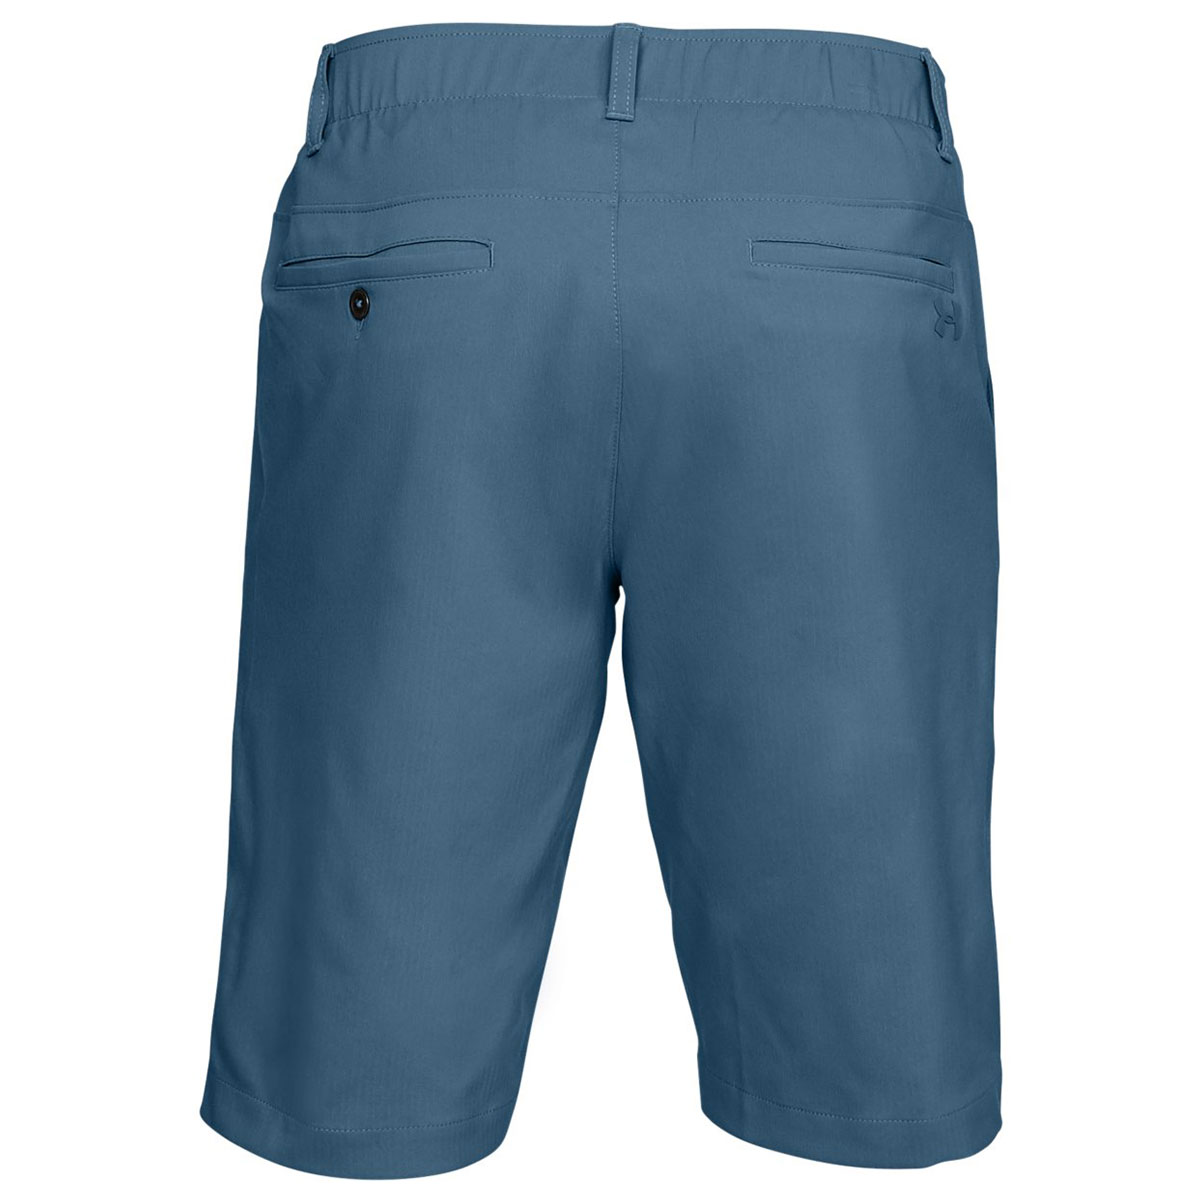 Under-Armour-Mens-Takeover-Taper-Mid-Length-Golf-Shorts-42-OFF-RRP thumbnail 12